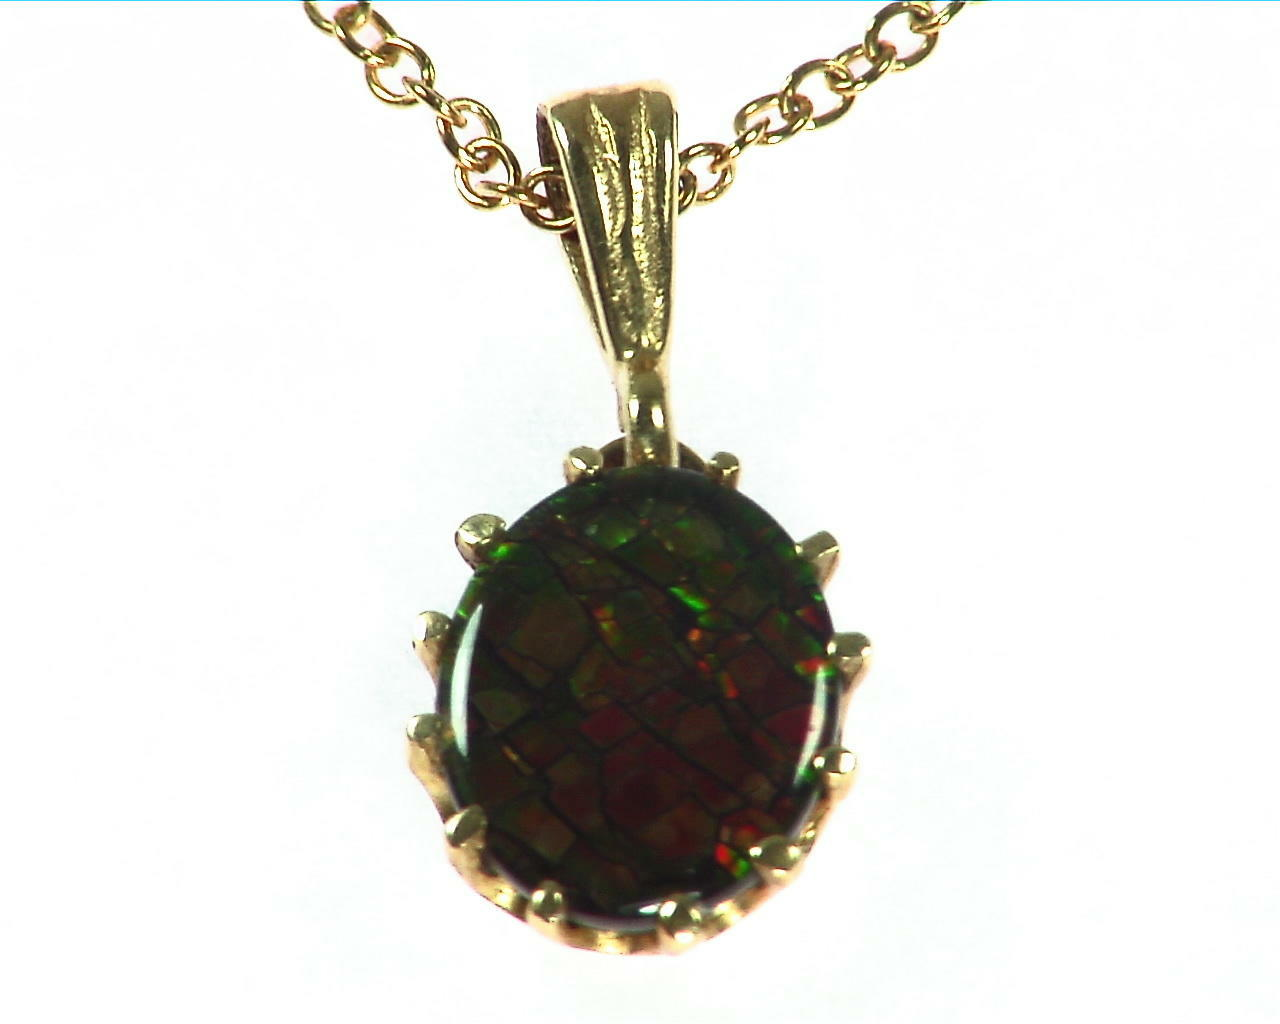 Ammolite Pendent in 14 kt Yellow Gold NFG,932 6